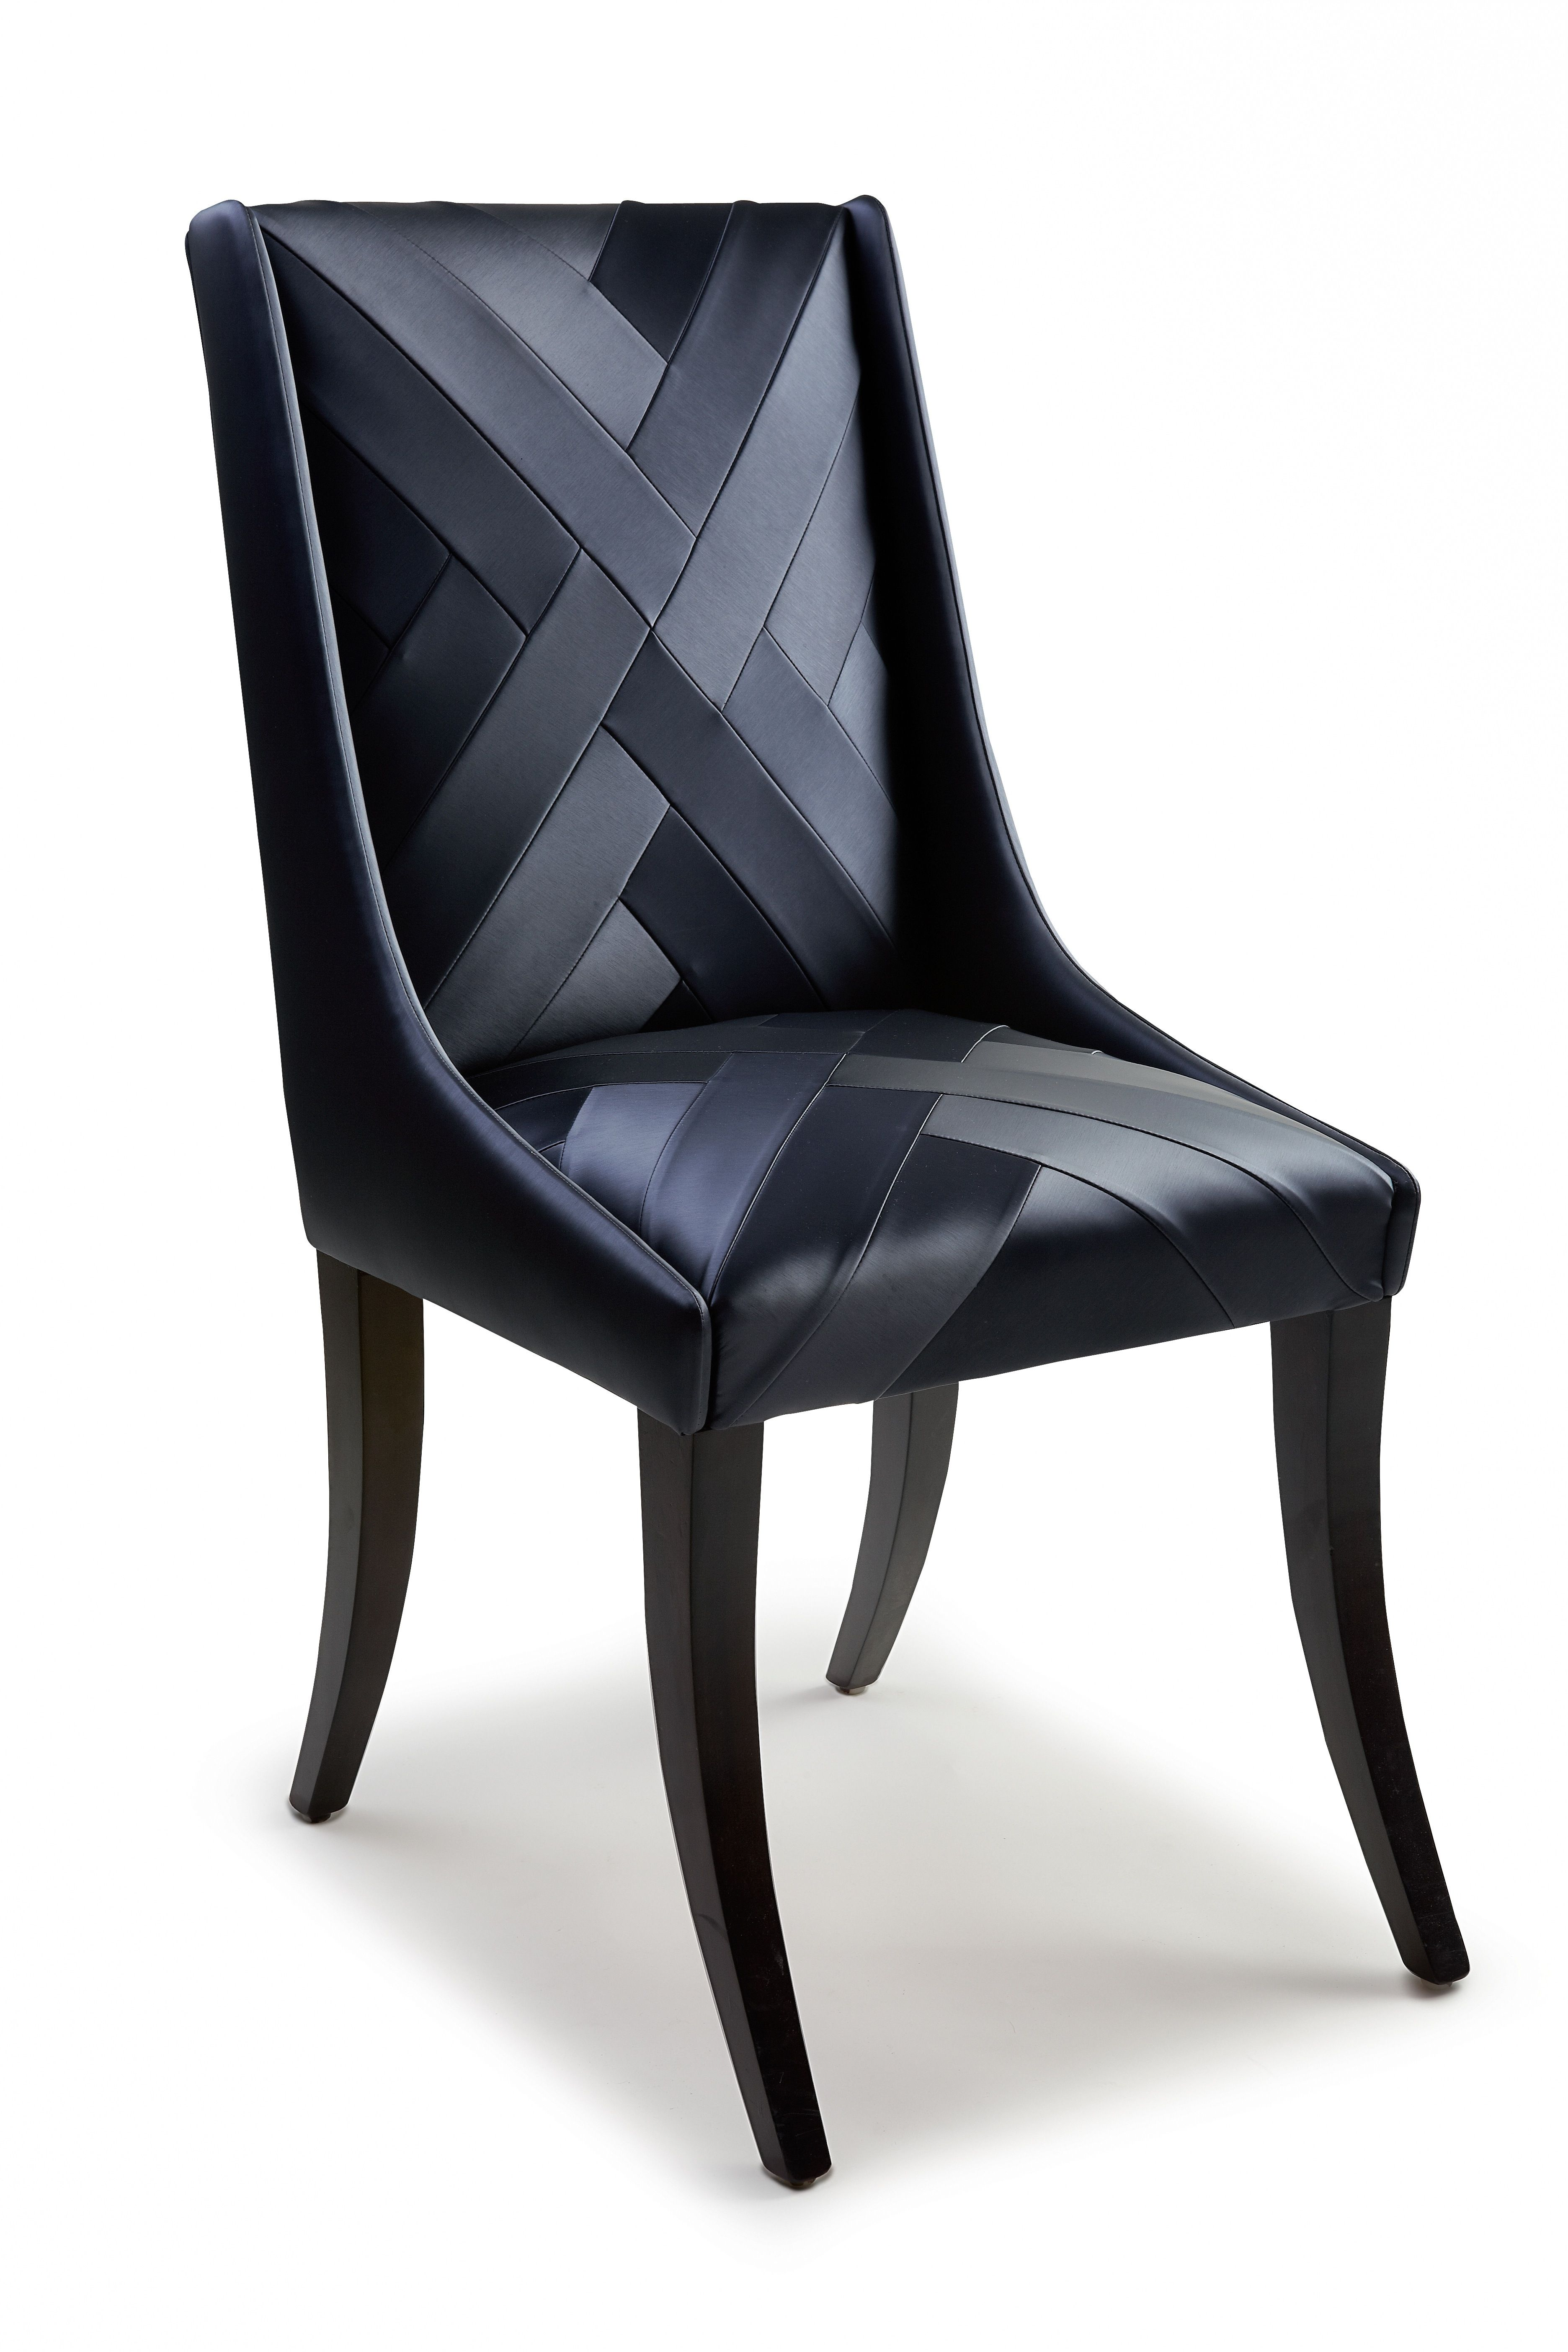 Chevron dining chair Black vinyl dining chair upholstered with